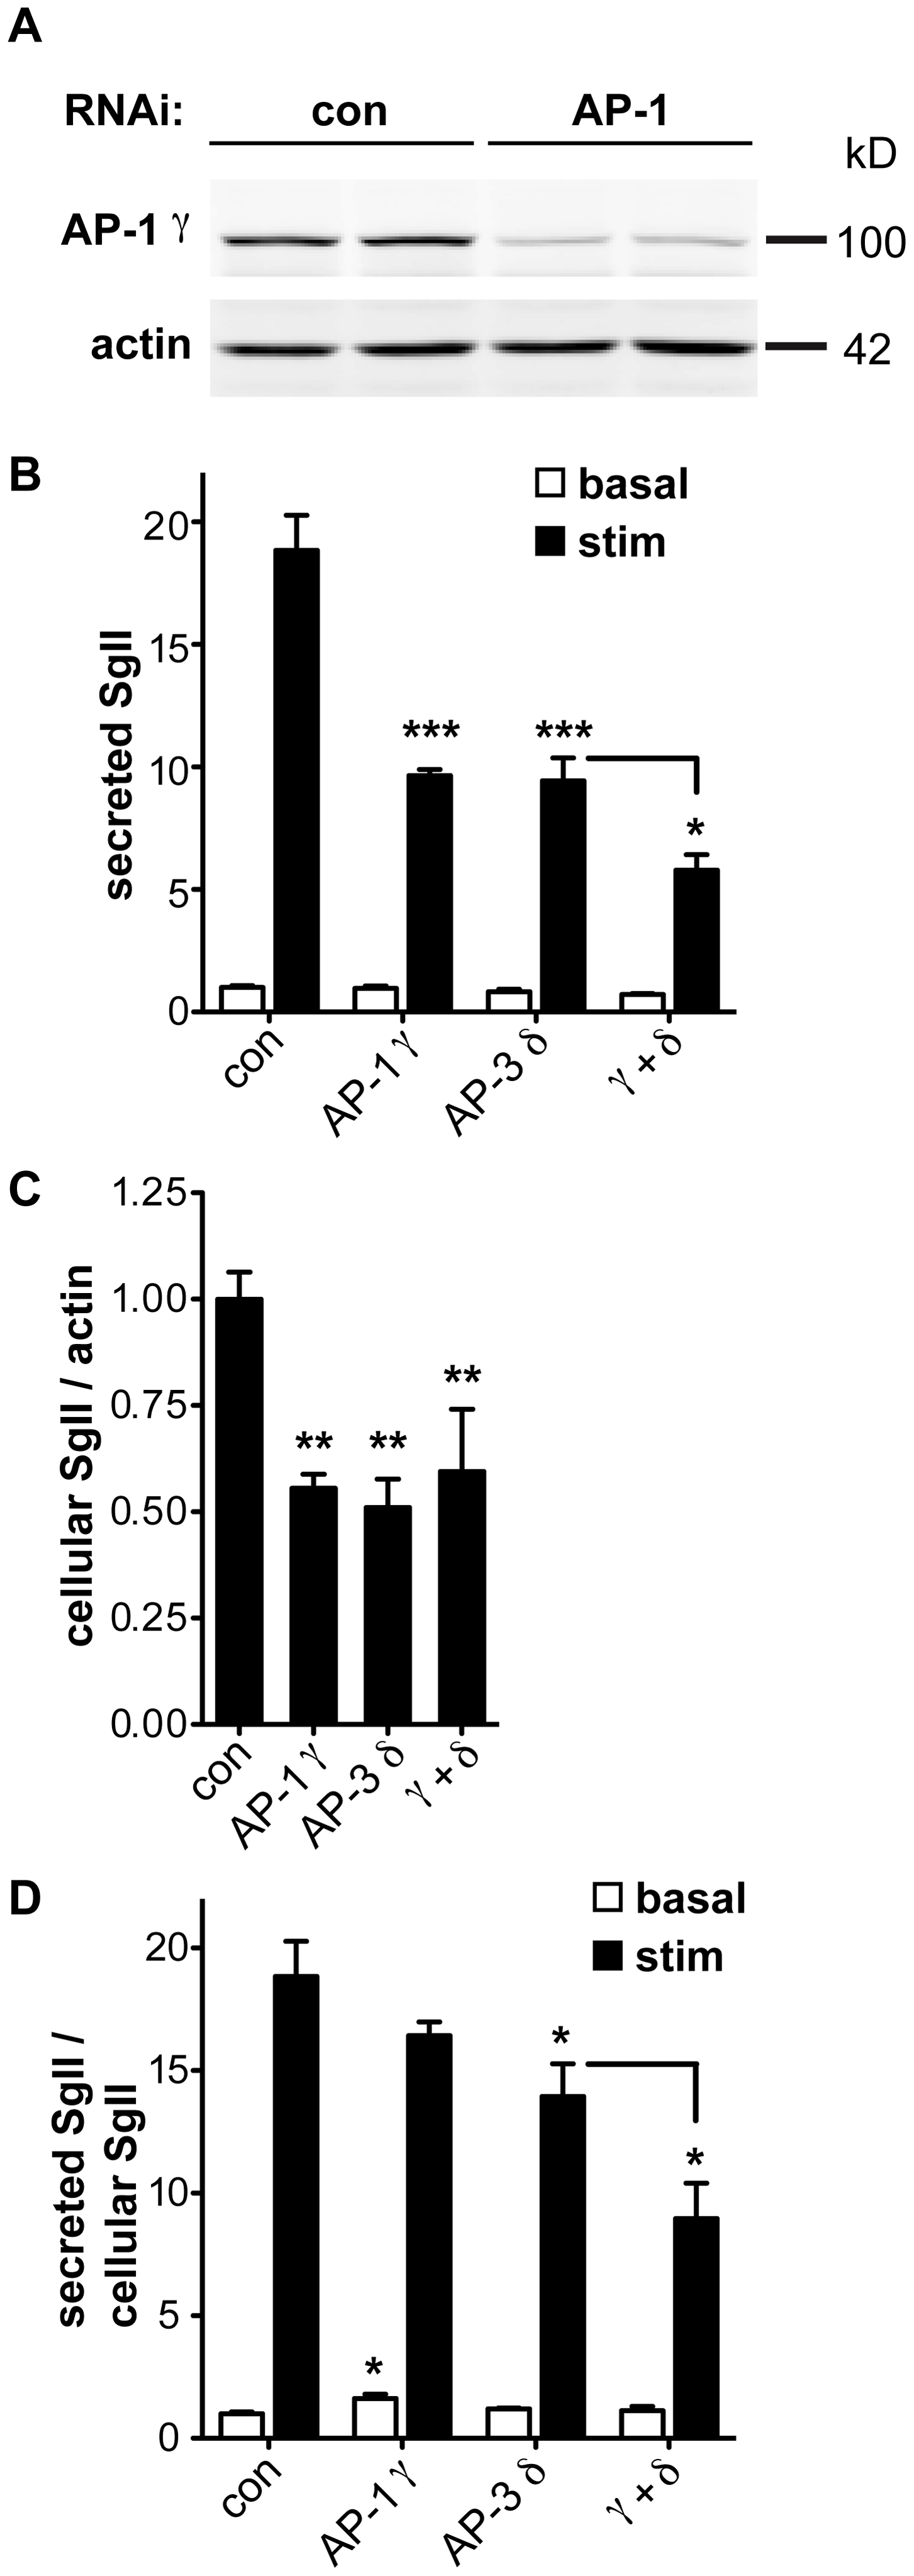 AP-1 knockdown potentiates the effect of AP-3 knockdown on regulated secretion.